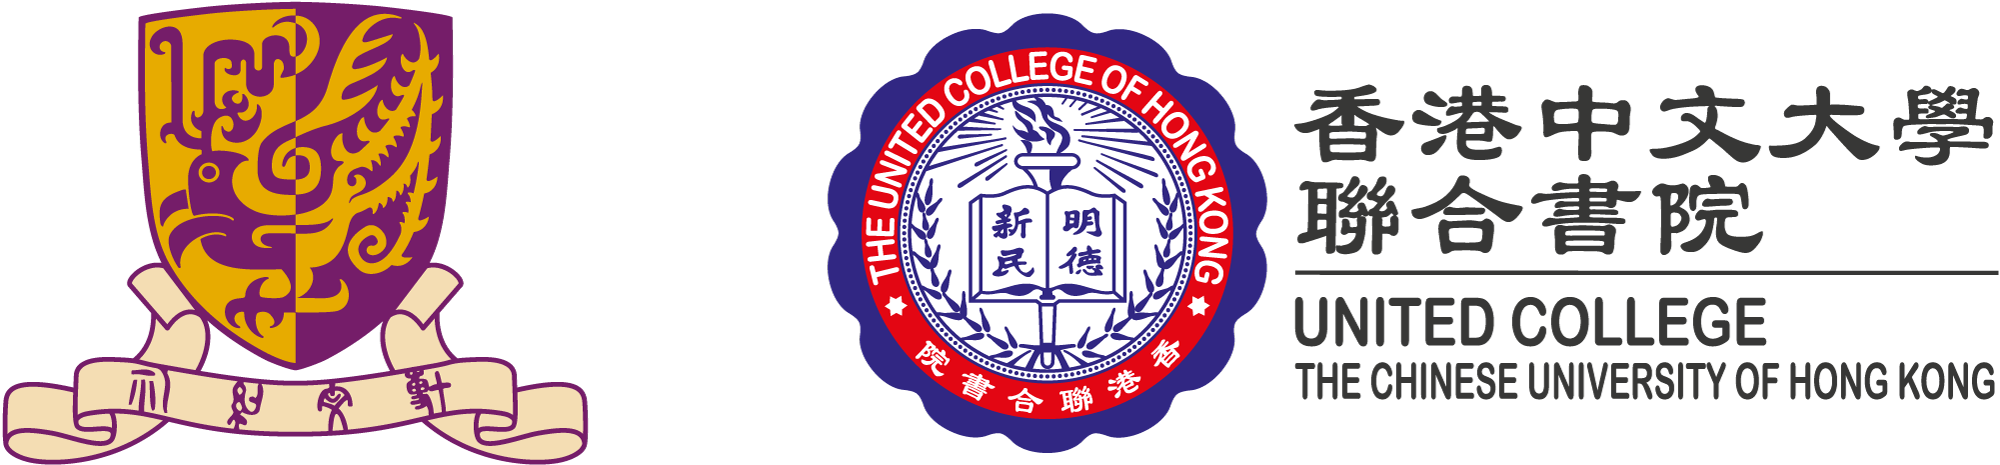 United College, The Chinese University of Hong Kong